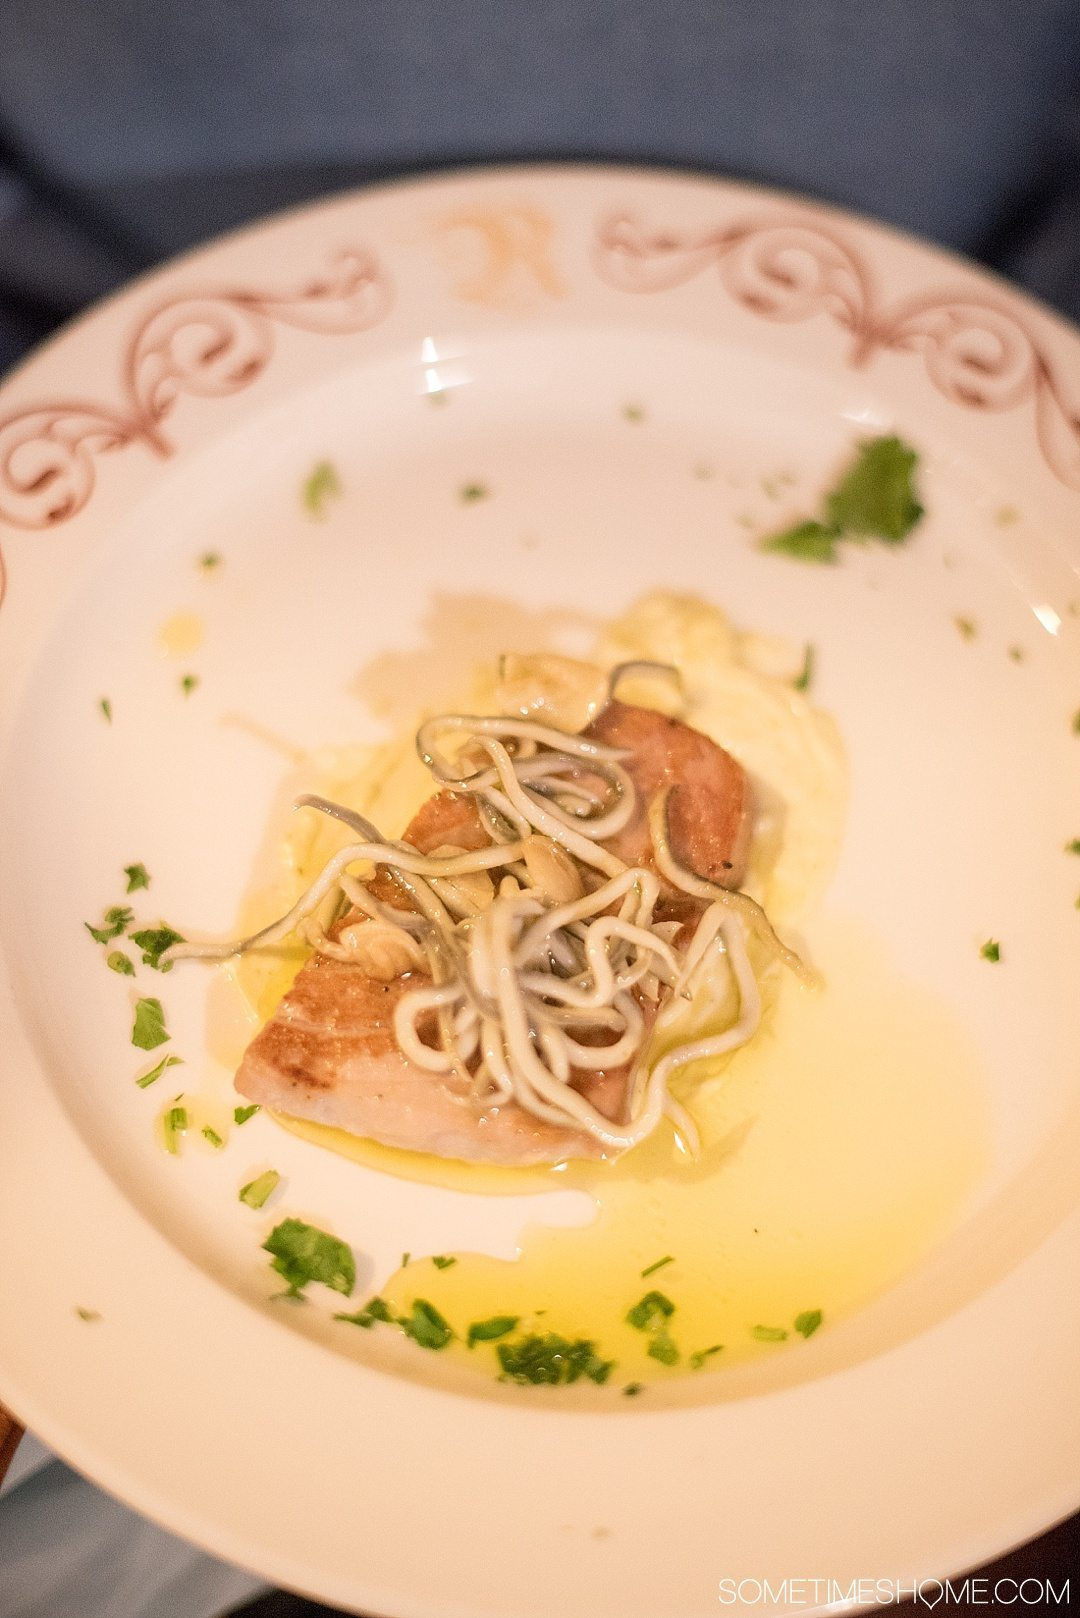 Eat Your Way Through Seville on Sometimes Home travel blog. Photo of tuna with imitation angulas, called Gulas.